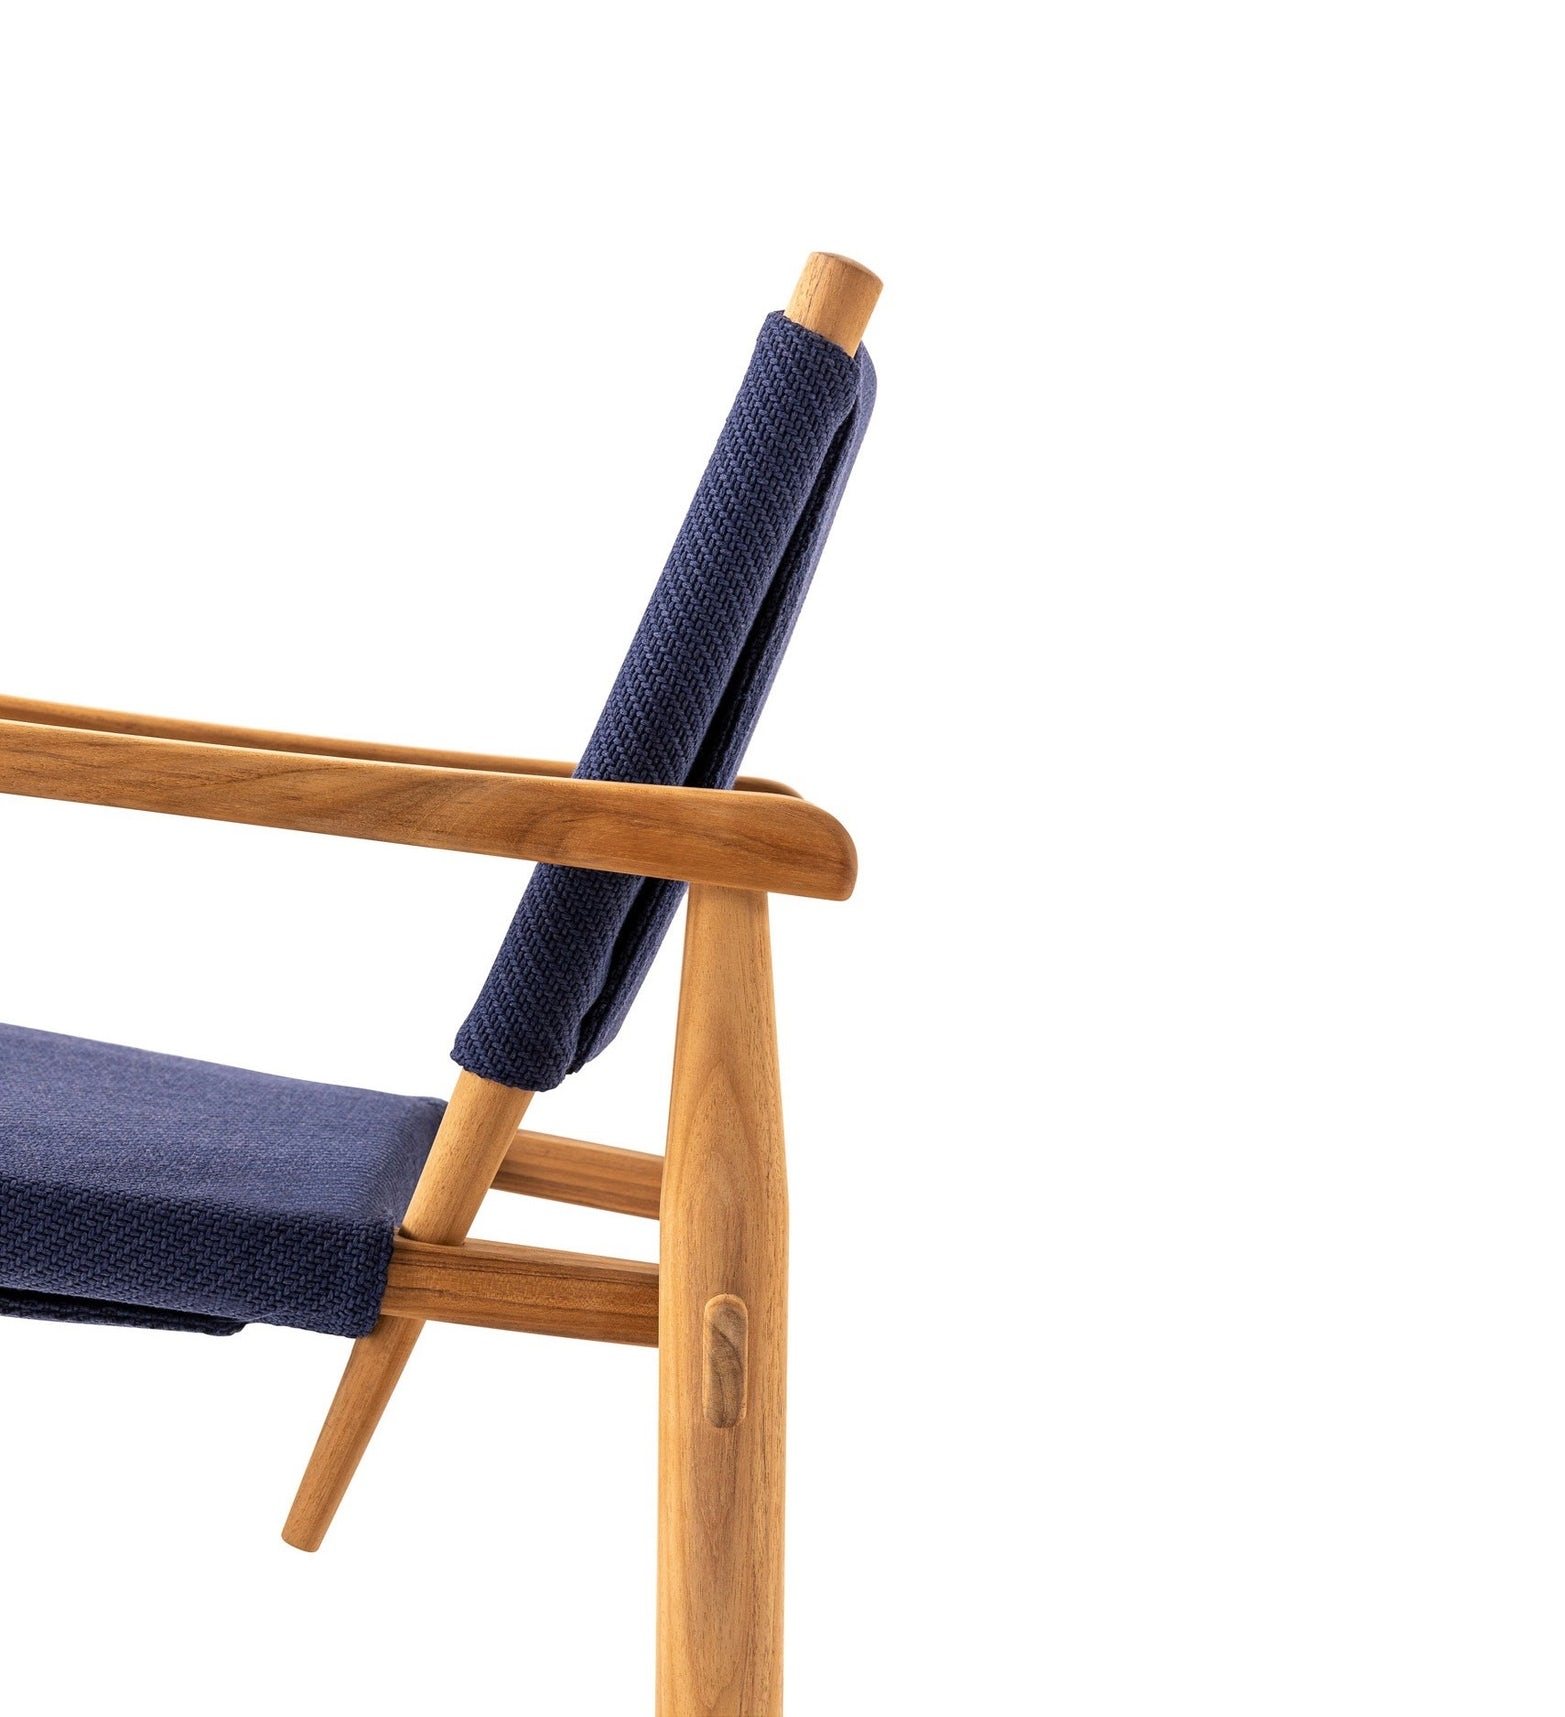 Doron Hotel Outdoor Chair Charlotte Perriand Cassina 3